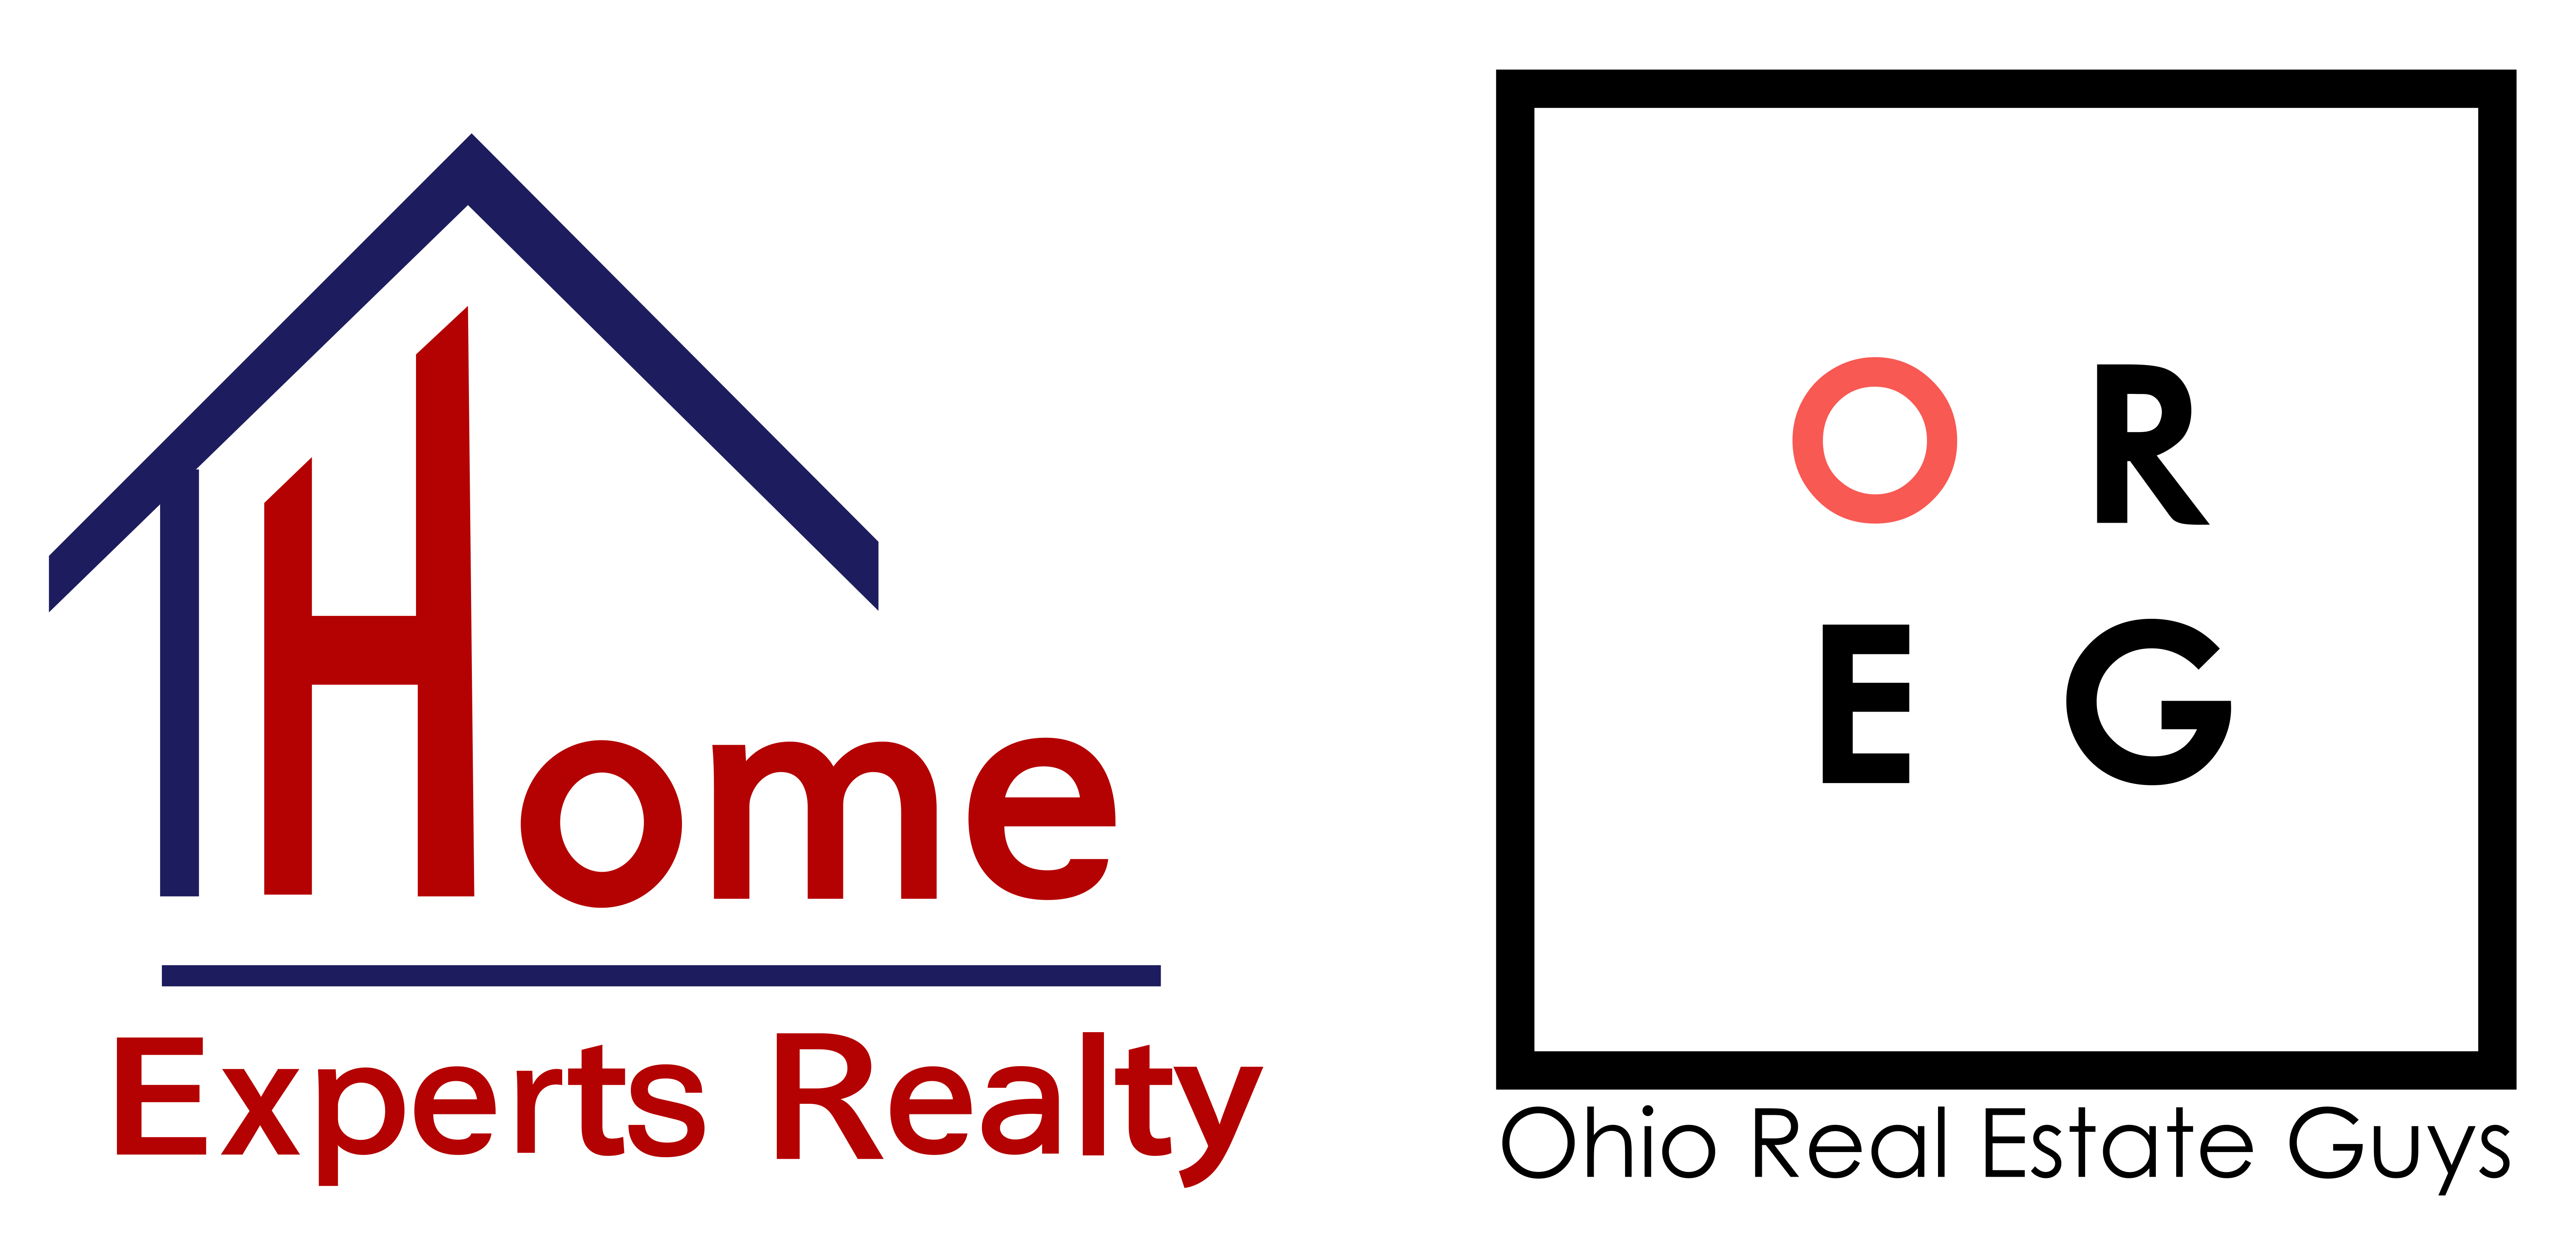 Dayton Oh Real Estate | Houses & Homes for Sale Dayton Ohio